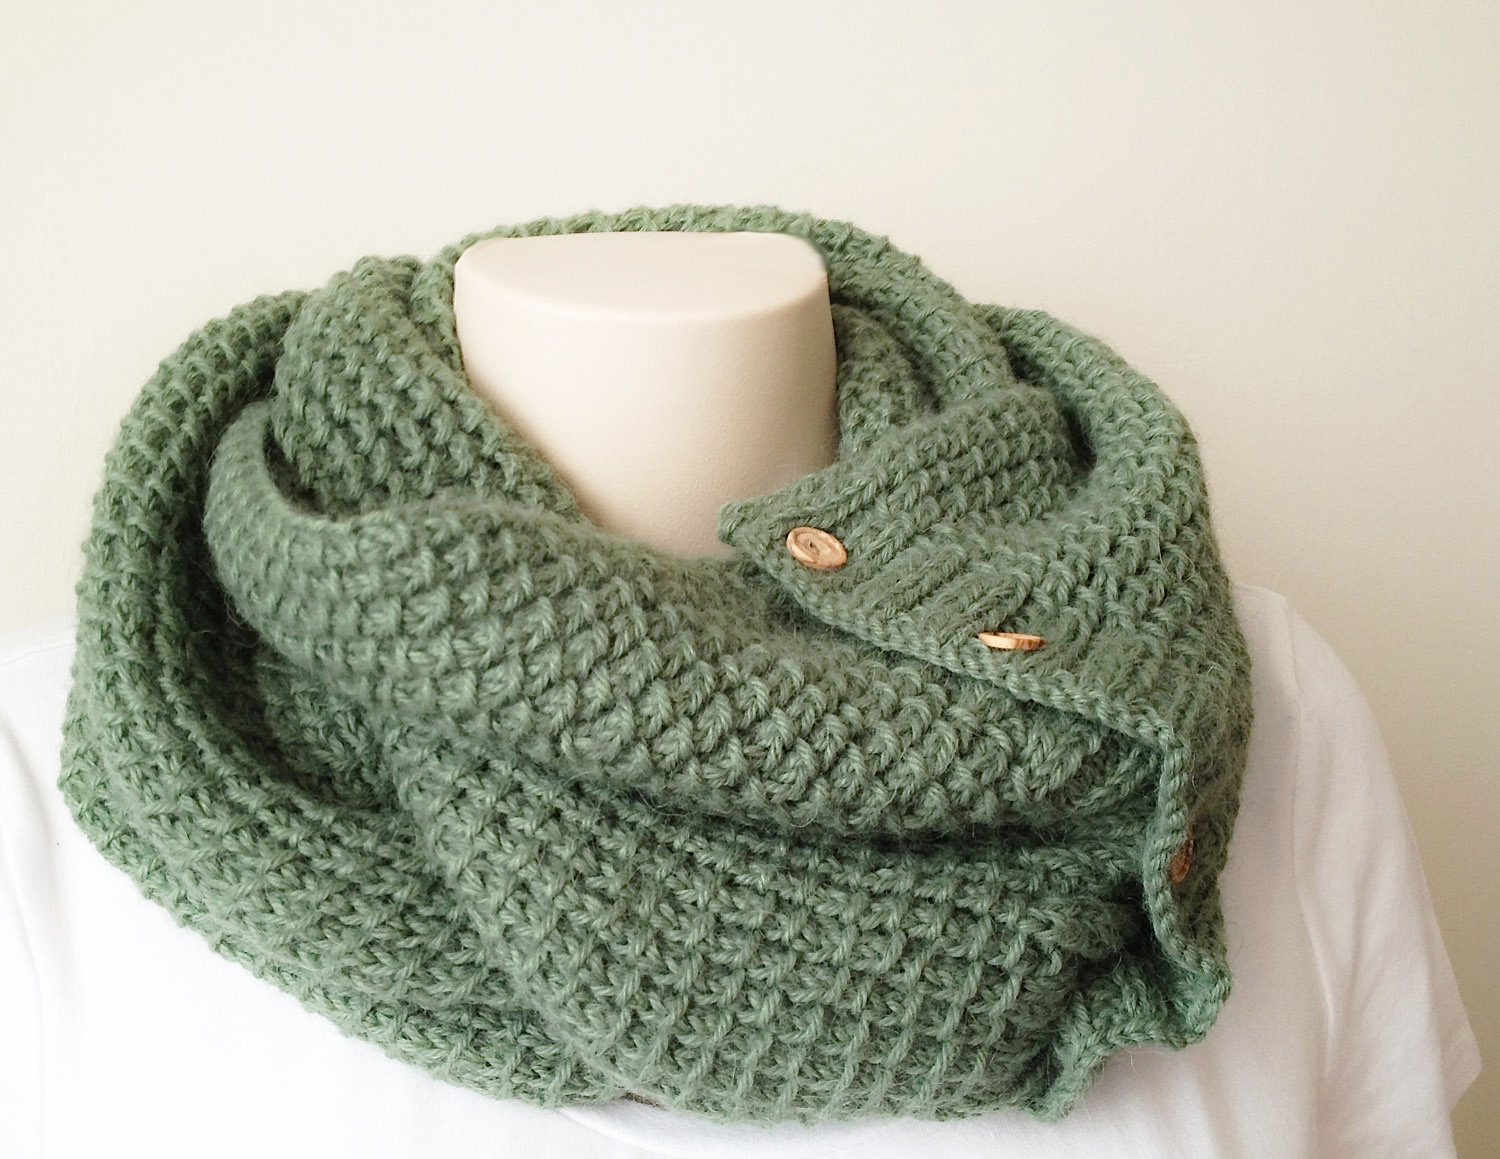 Textured Knitting : New knitting pattern textured cowl or scarf